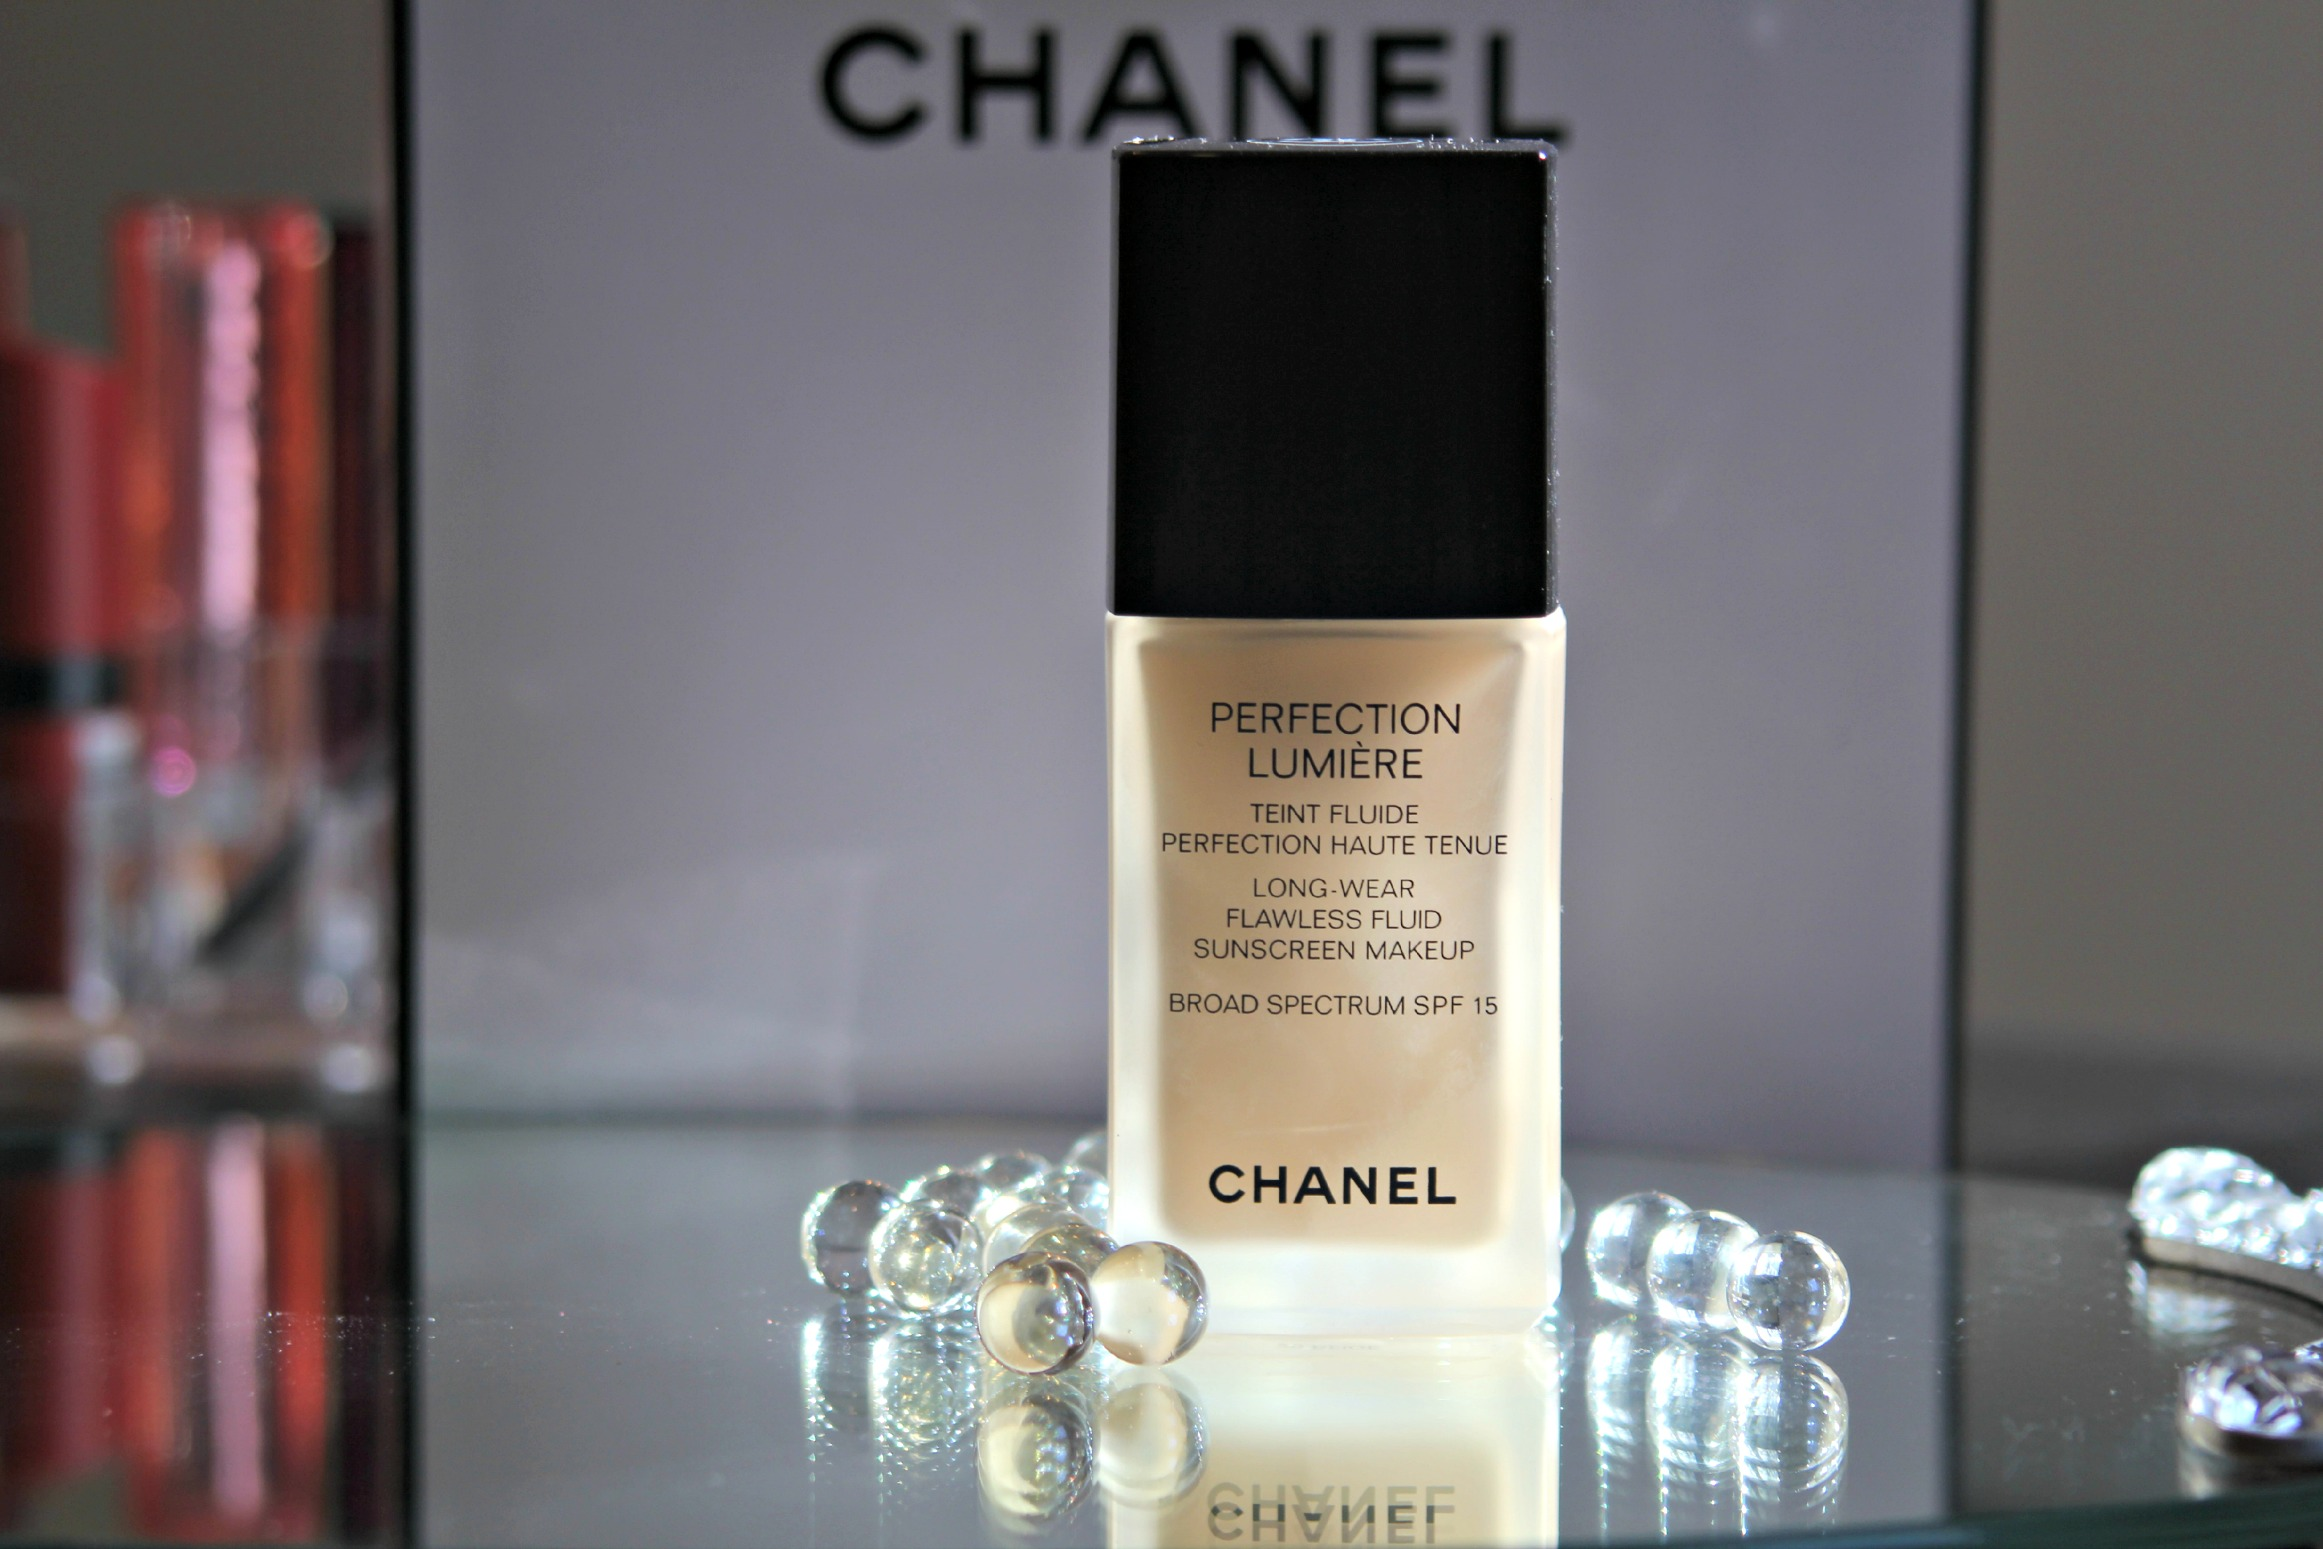 New in: Chanel